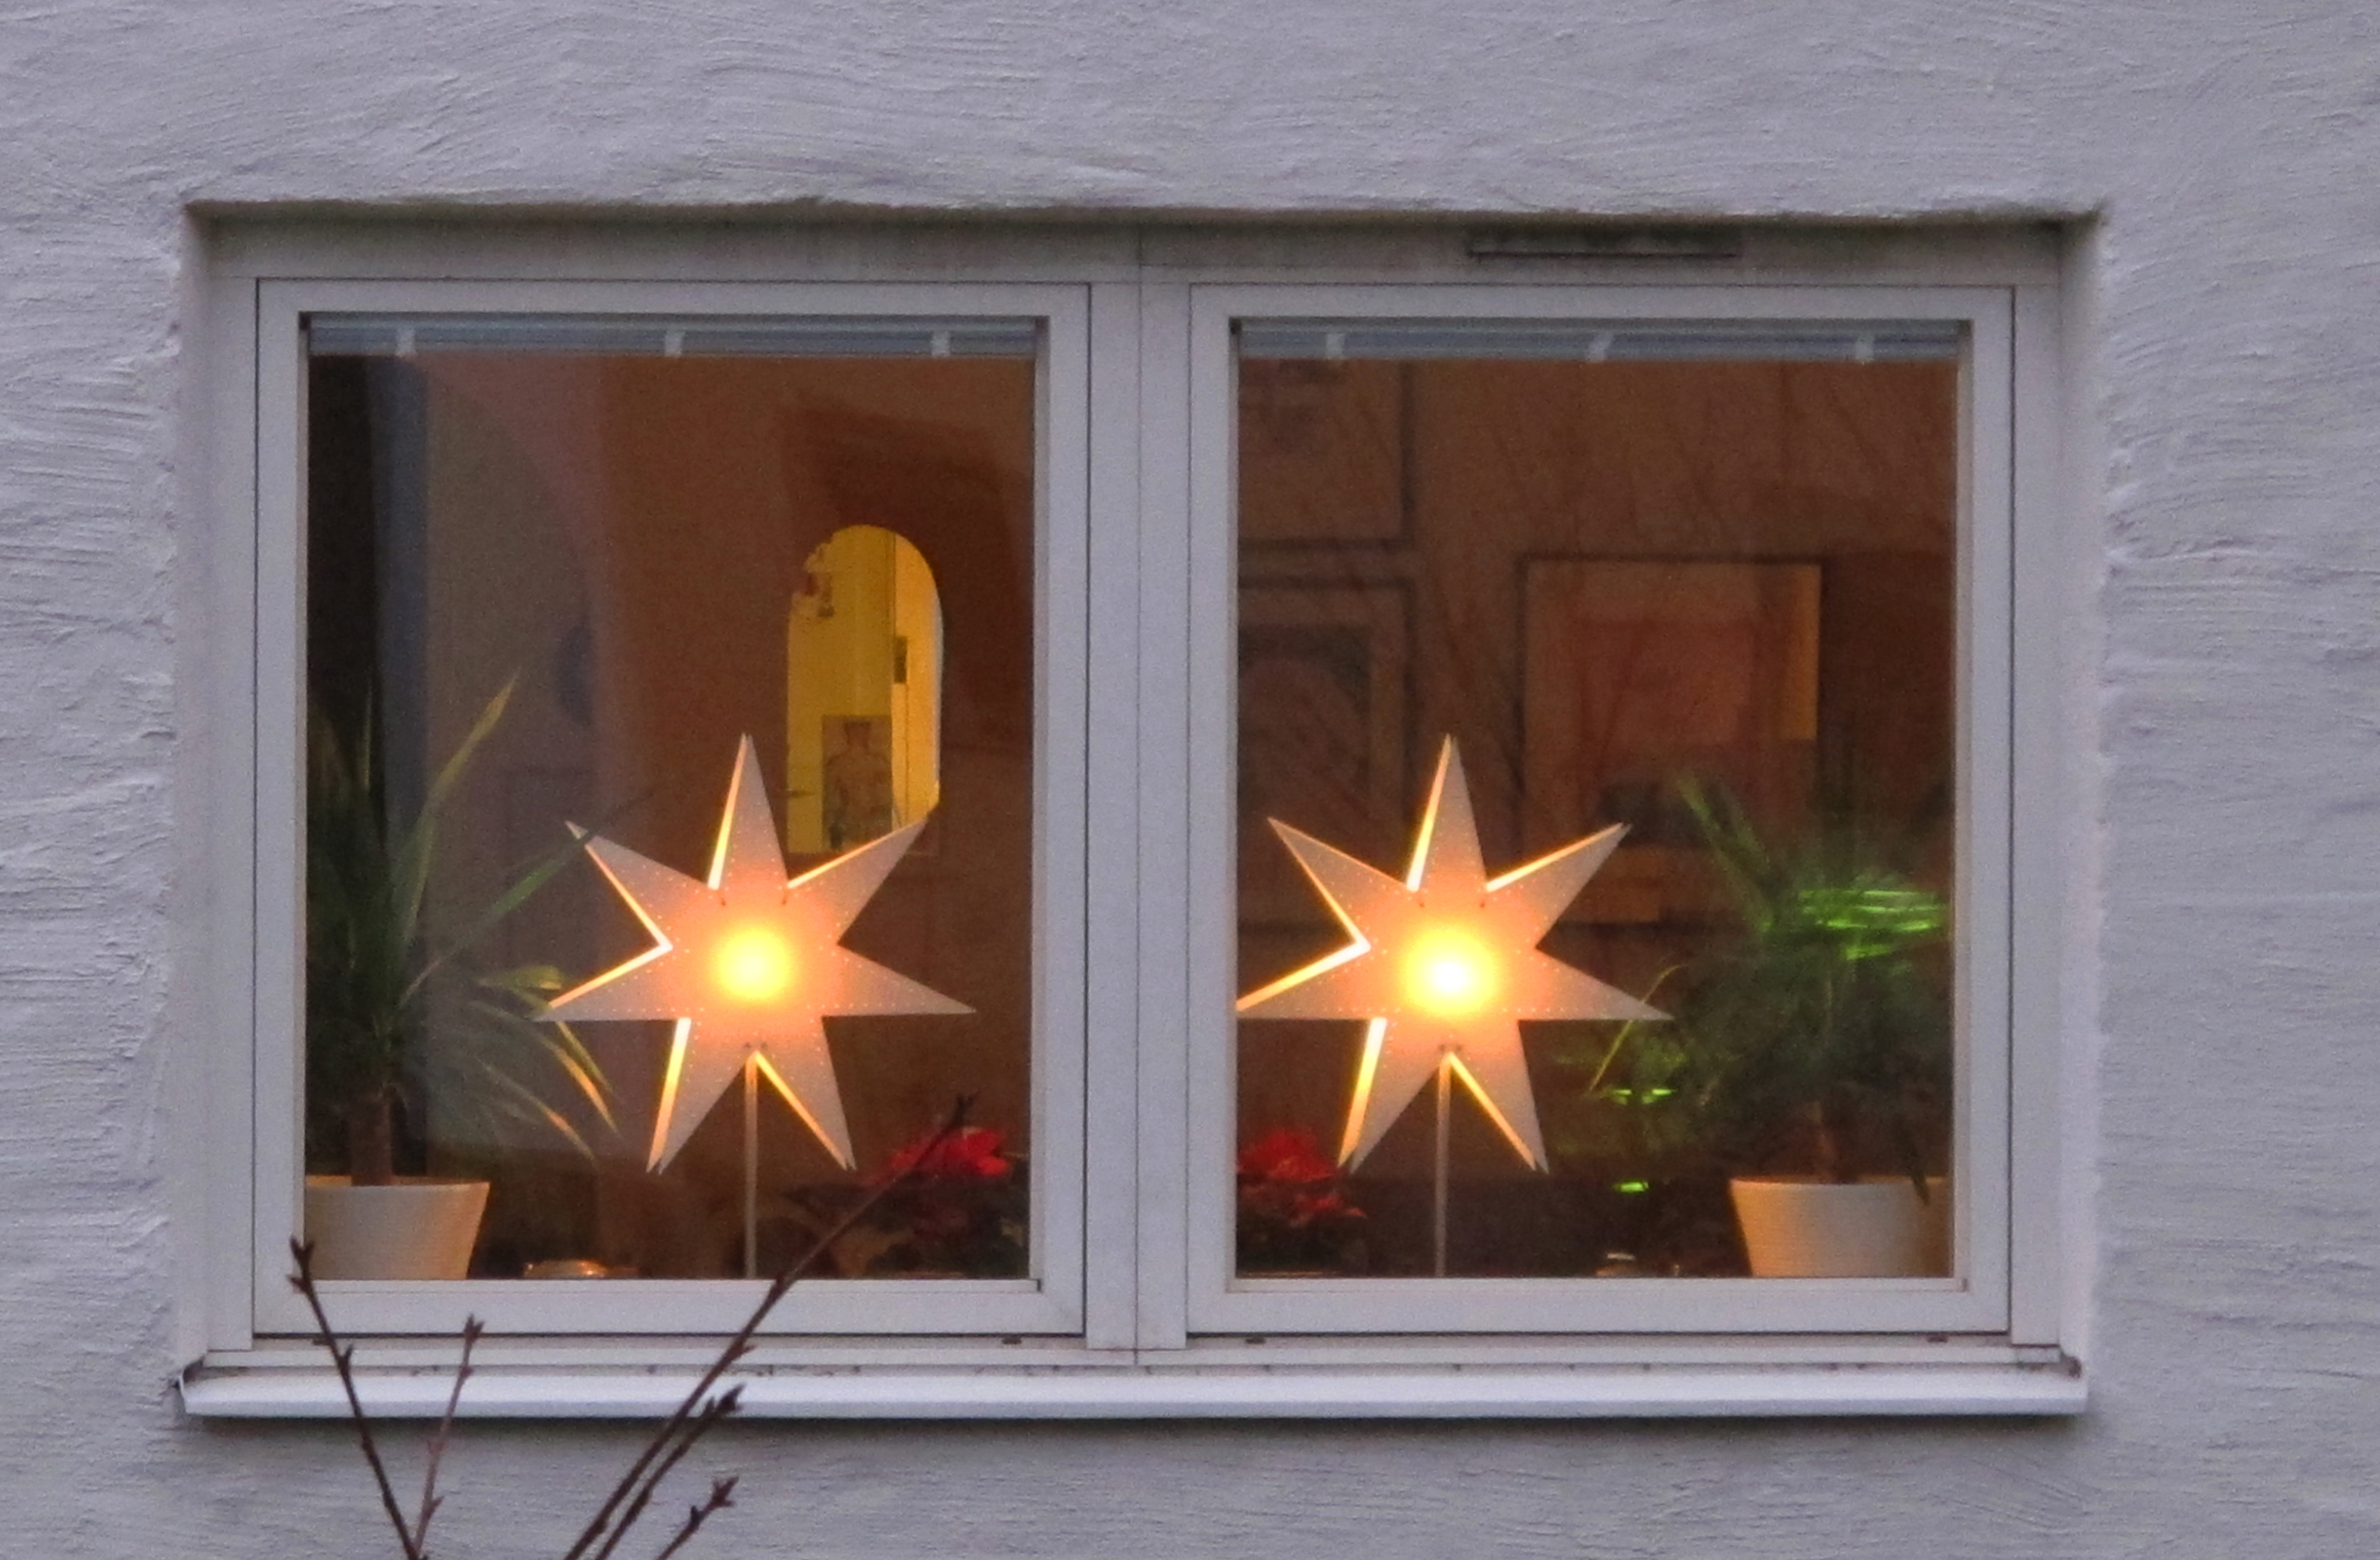 Bringing light to the dark semiswede for Christmas home window decorations ideas